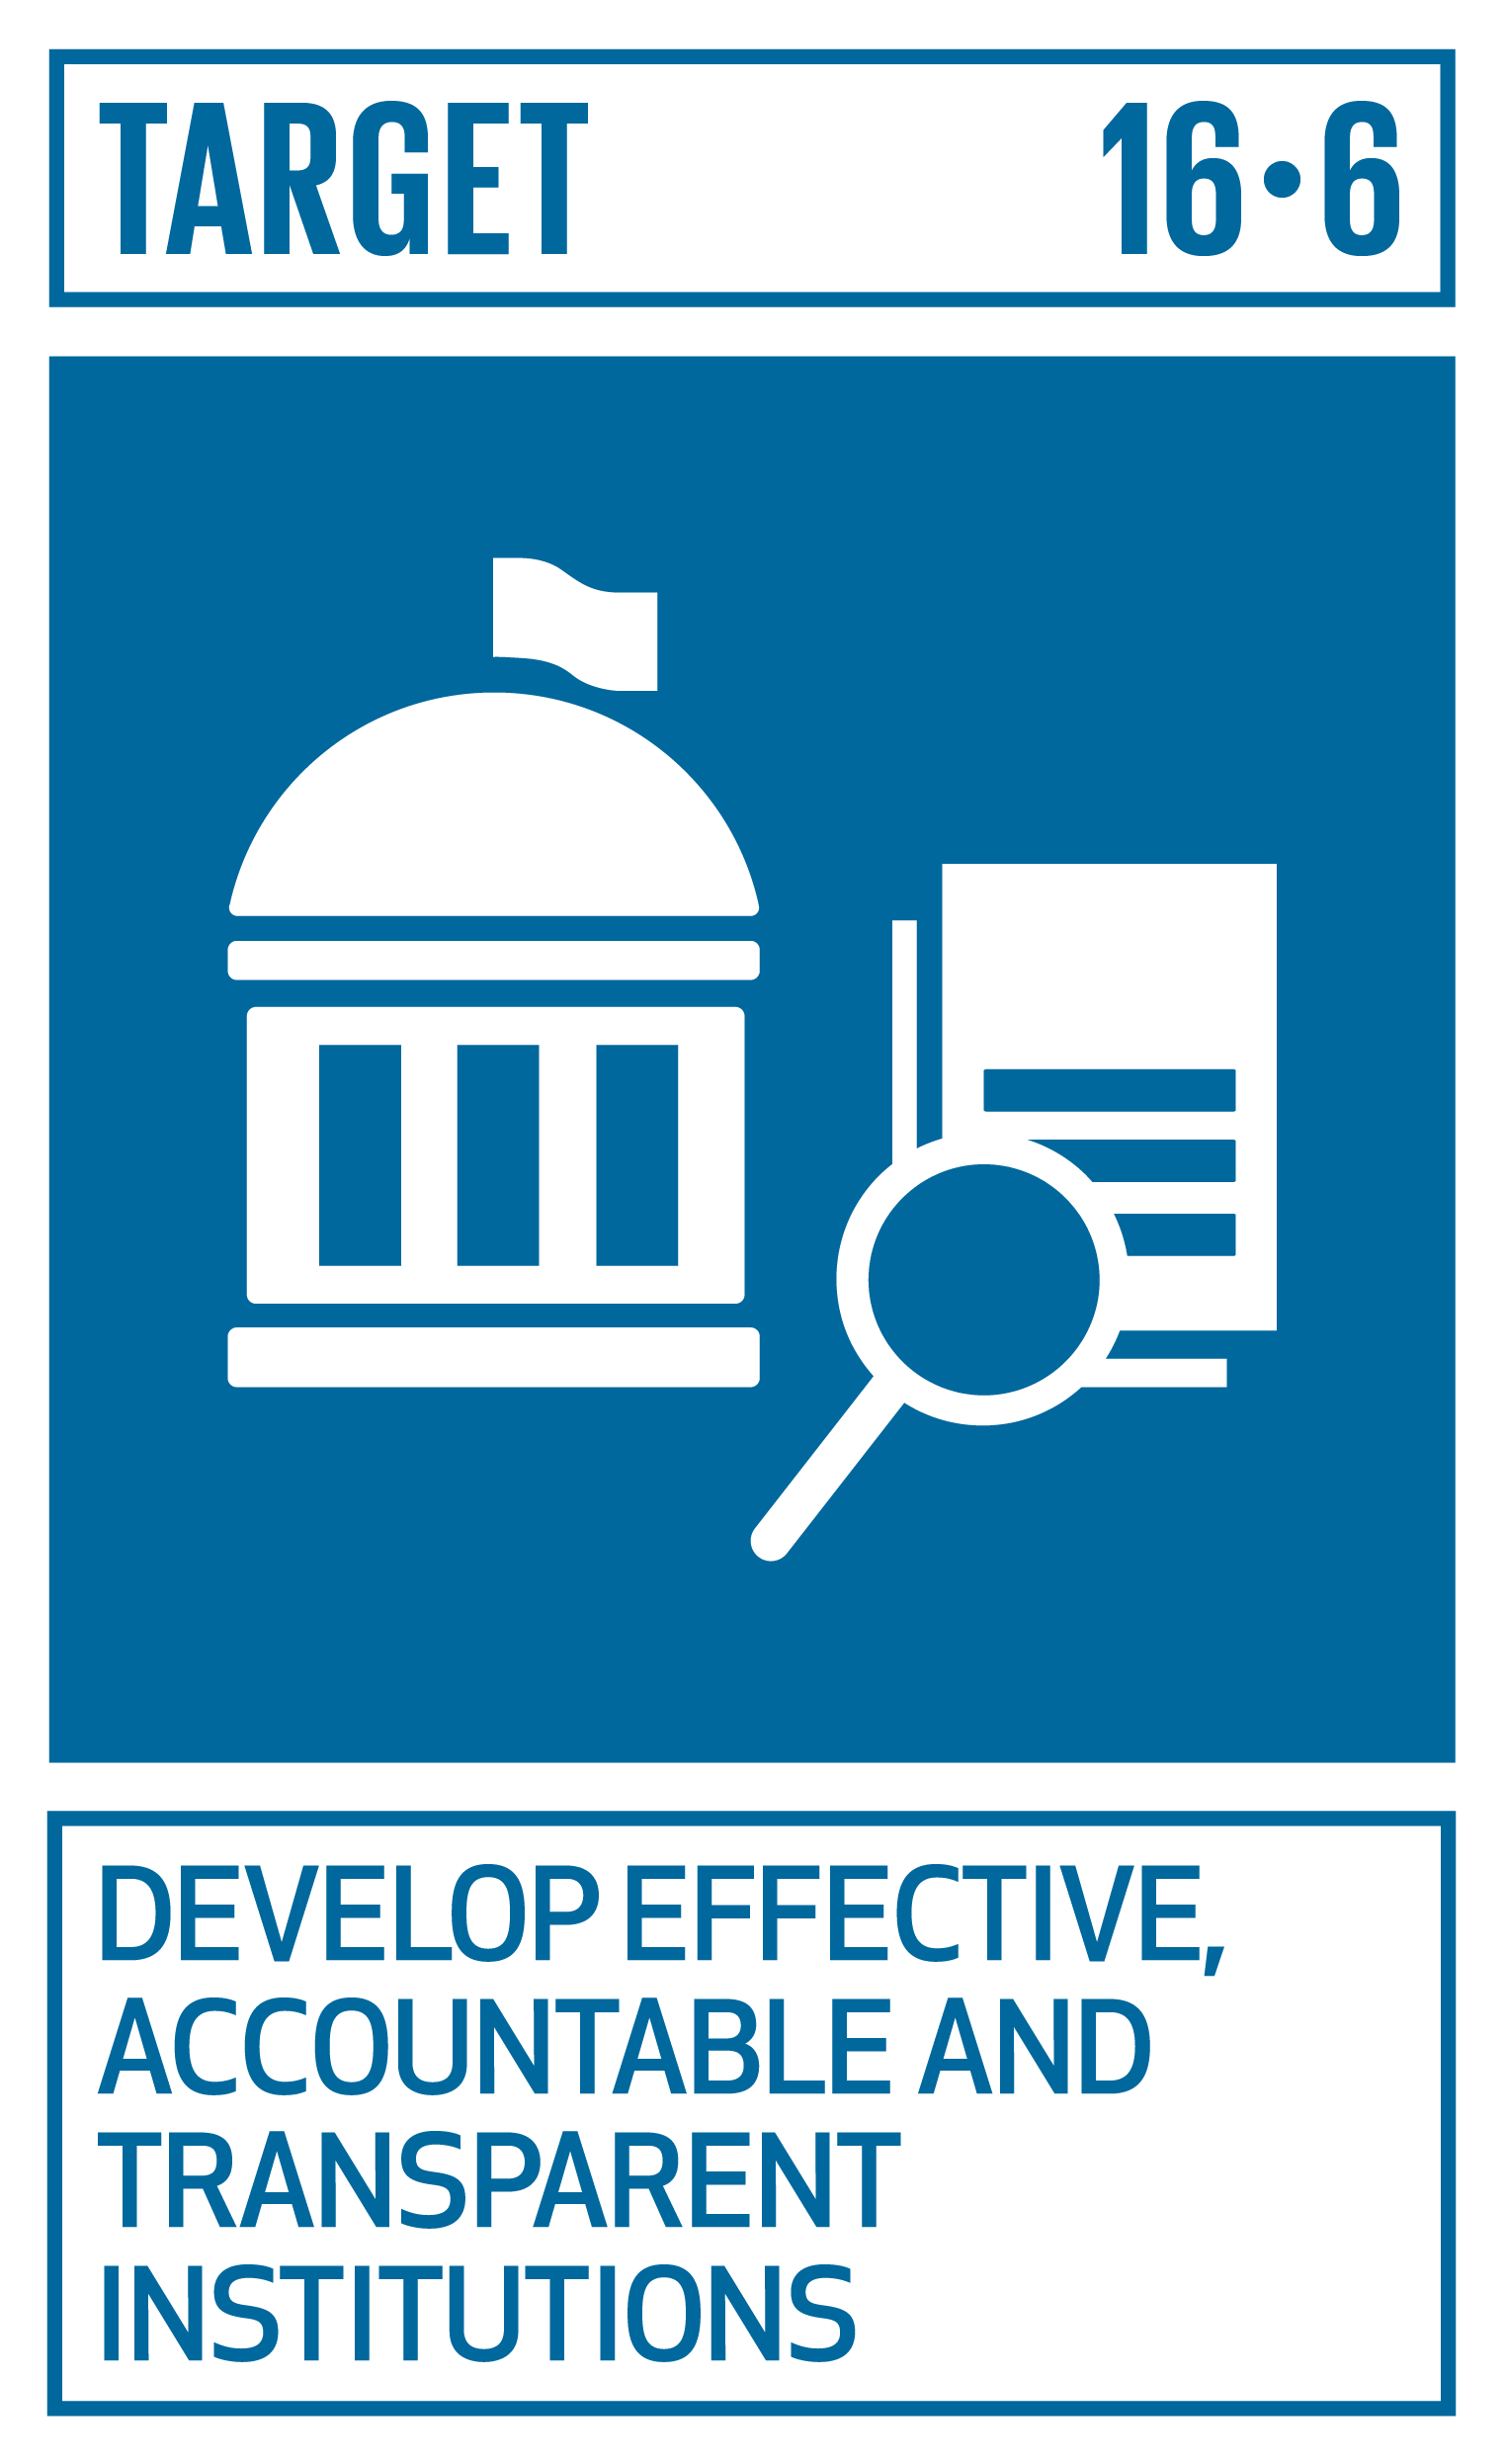 Develop effective, accountable and transparent institutions at all levels.   INDICATORS    16.6.1  Primary government expenditures as a proportion of original approved budget, by sector (or by budget codes or similar)  16.6.2 Proportion of population satisfied with their last experience of public services